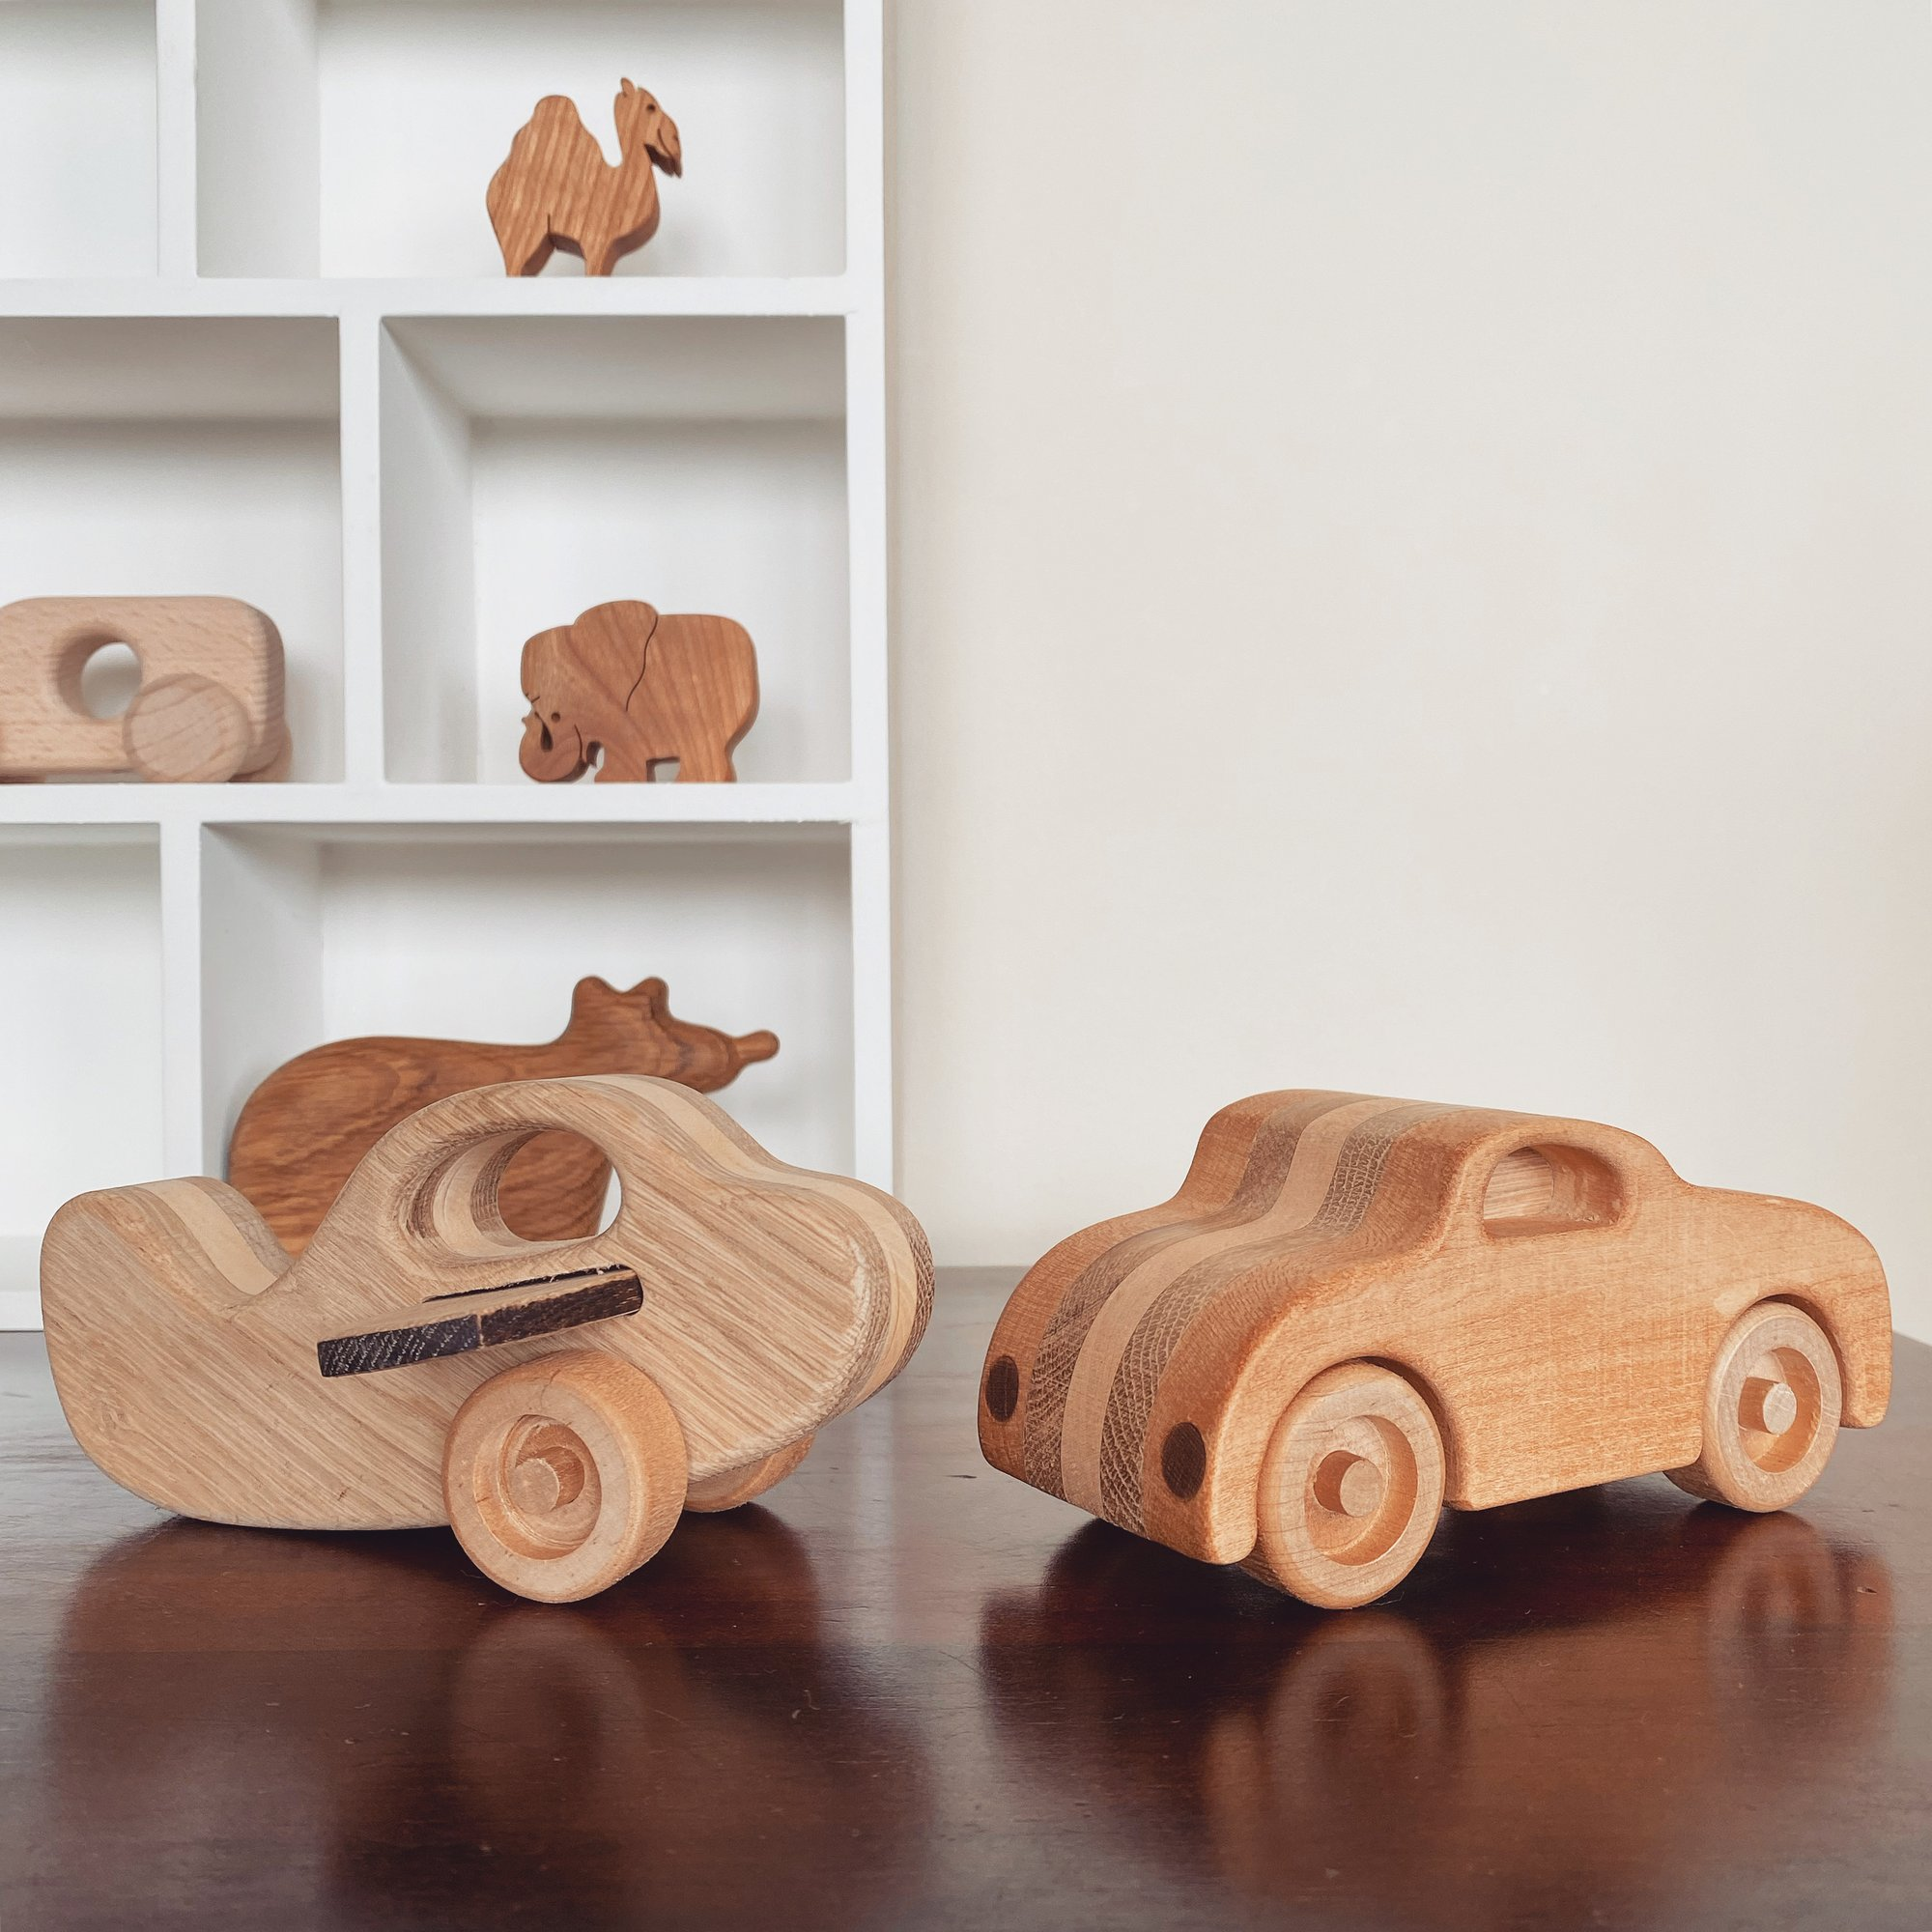 Wooden Car and plane